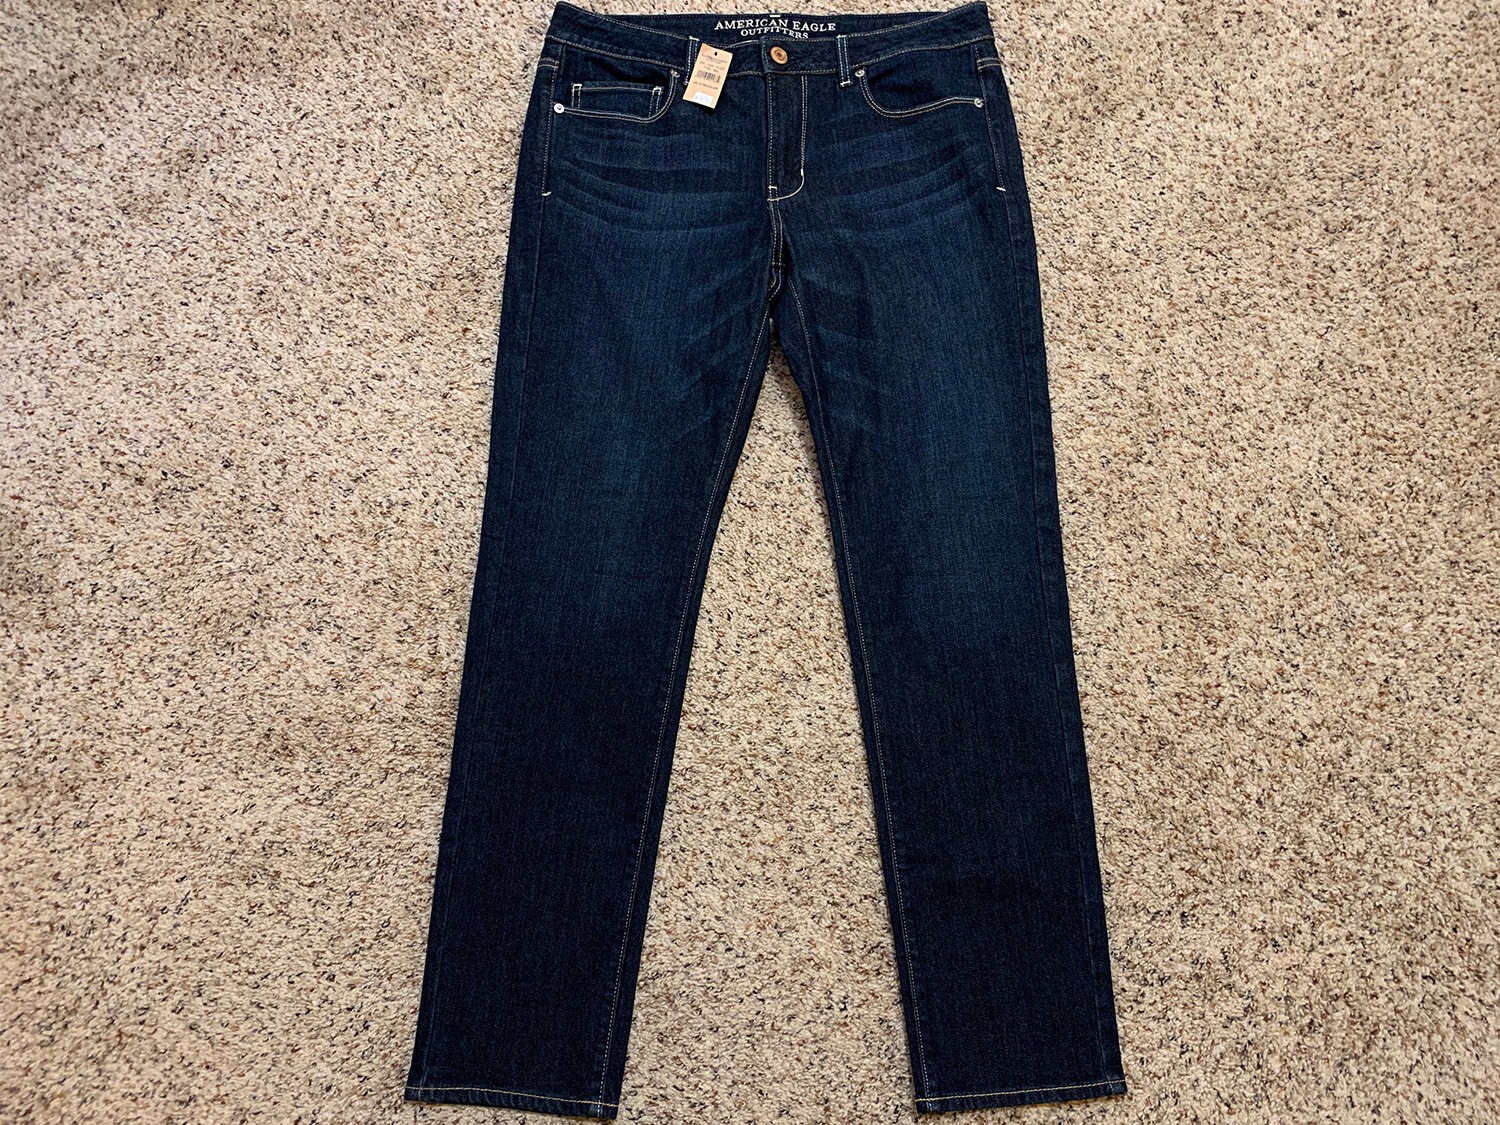 American Eagle Womens Mid-Rise Skinny Jeans NWT Size 12 Regular at The MenuGem Web Store